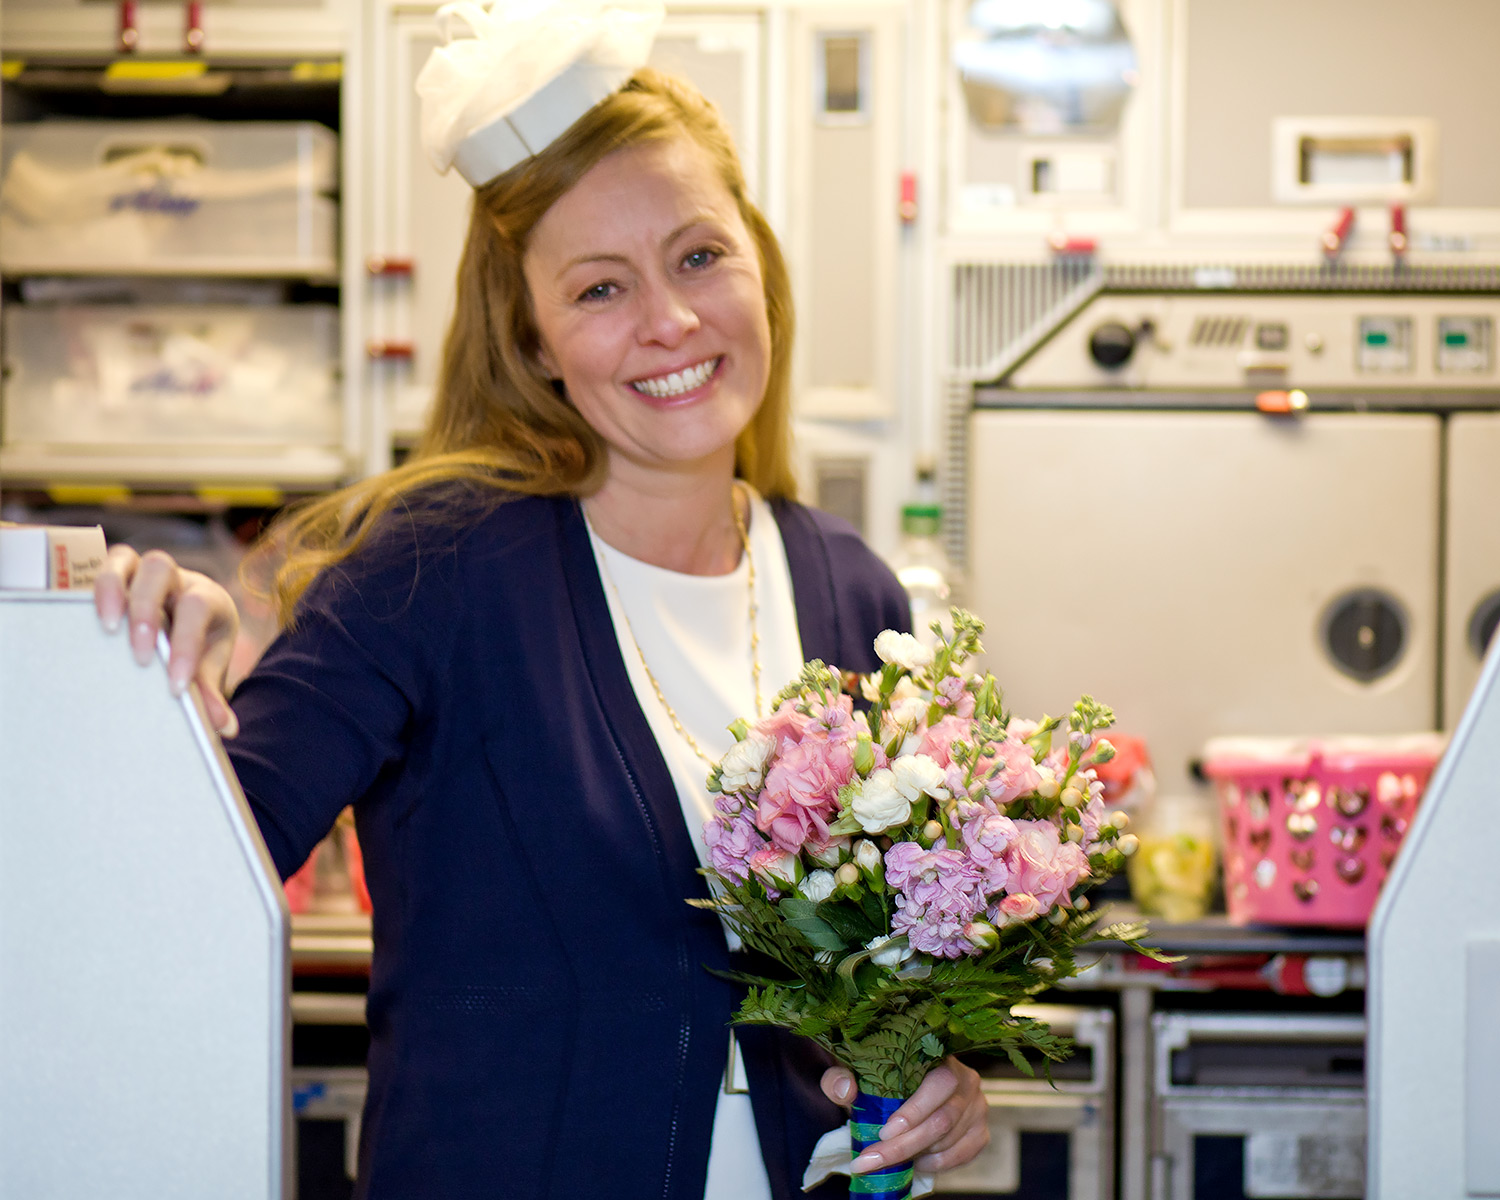 Bride Kristy holding bridal bouquet during airplane wedding